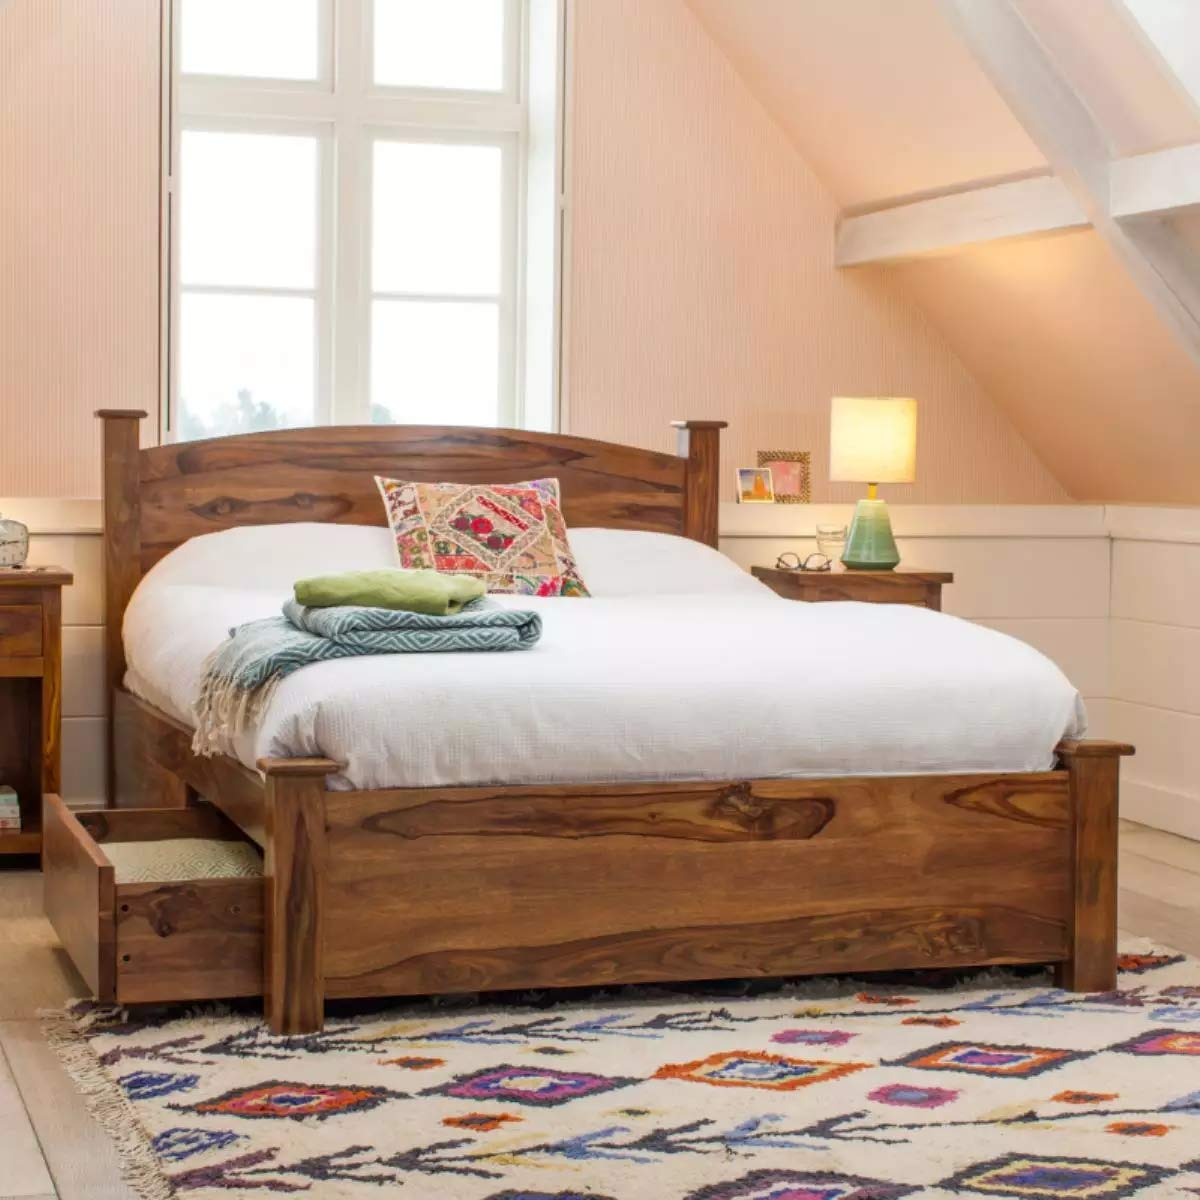 Sheesham Wood Kermit Queen Size Bed with 2 Drawers for Bedroom  Brown Finish